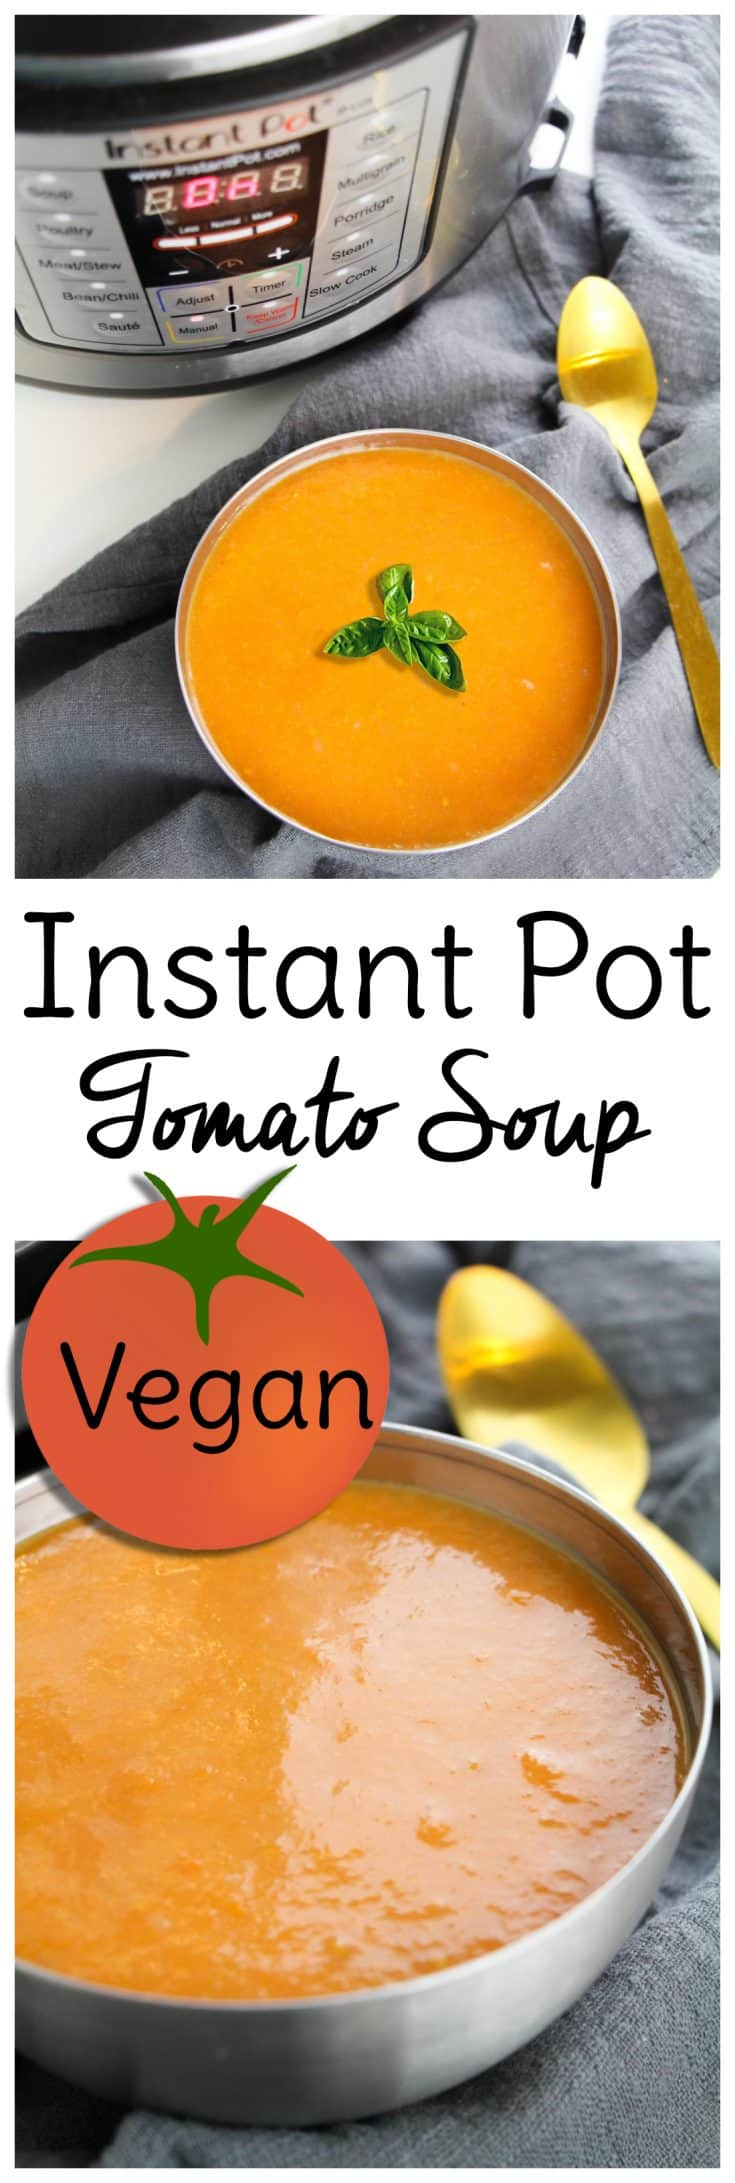 Vegan Tomato Soup: This vegan Instant Pot soup recipe will give you a dinner so delicious even carnivores will love it! Use fresh tomatoes or canned. #veganinstantpot #instantpotsoup